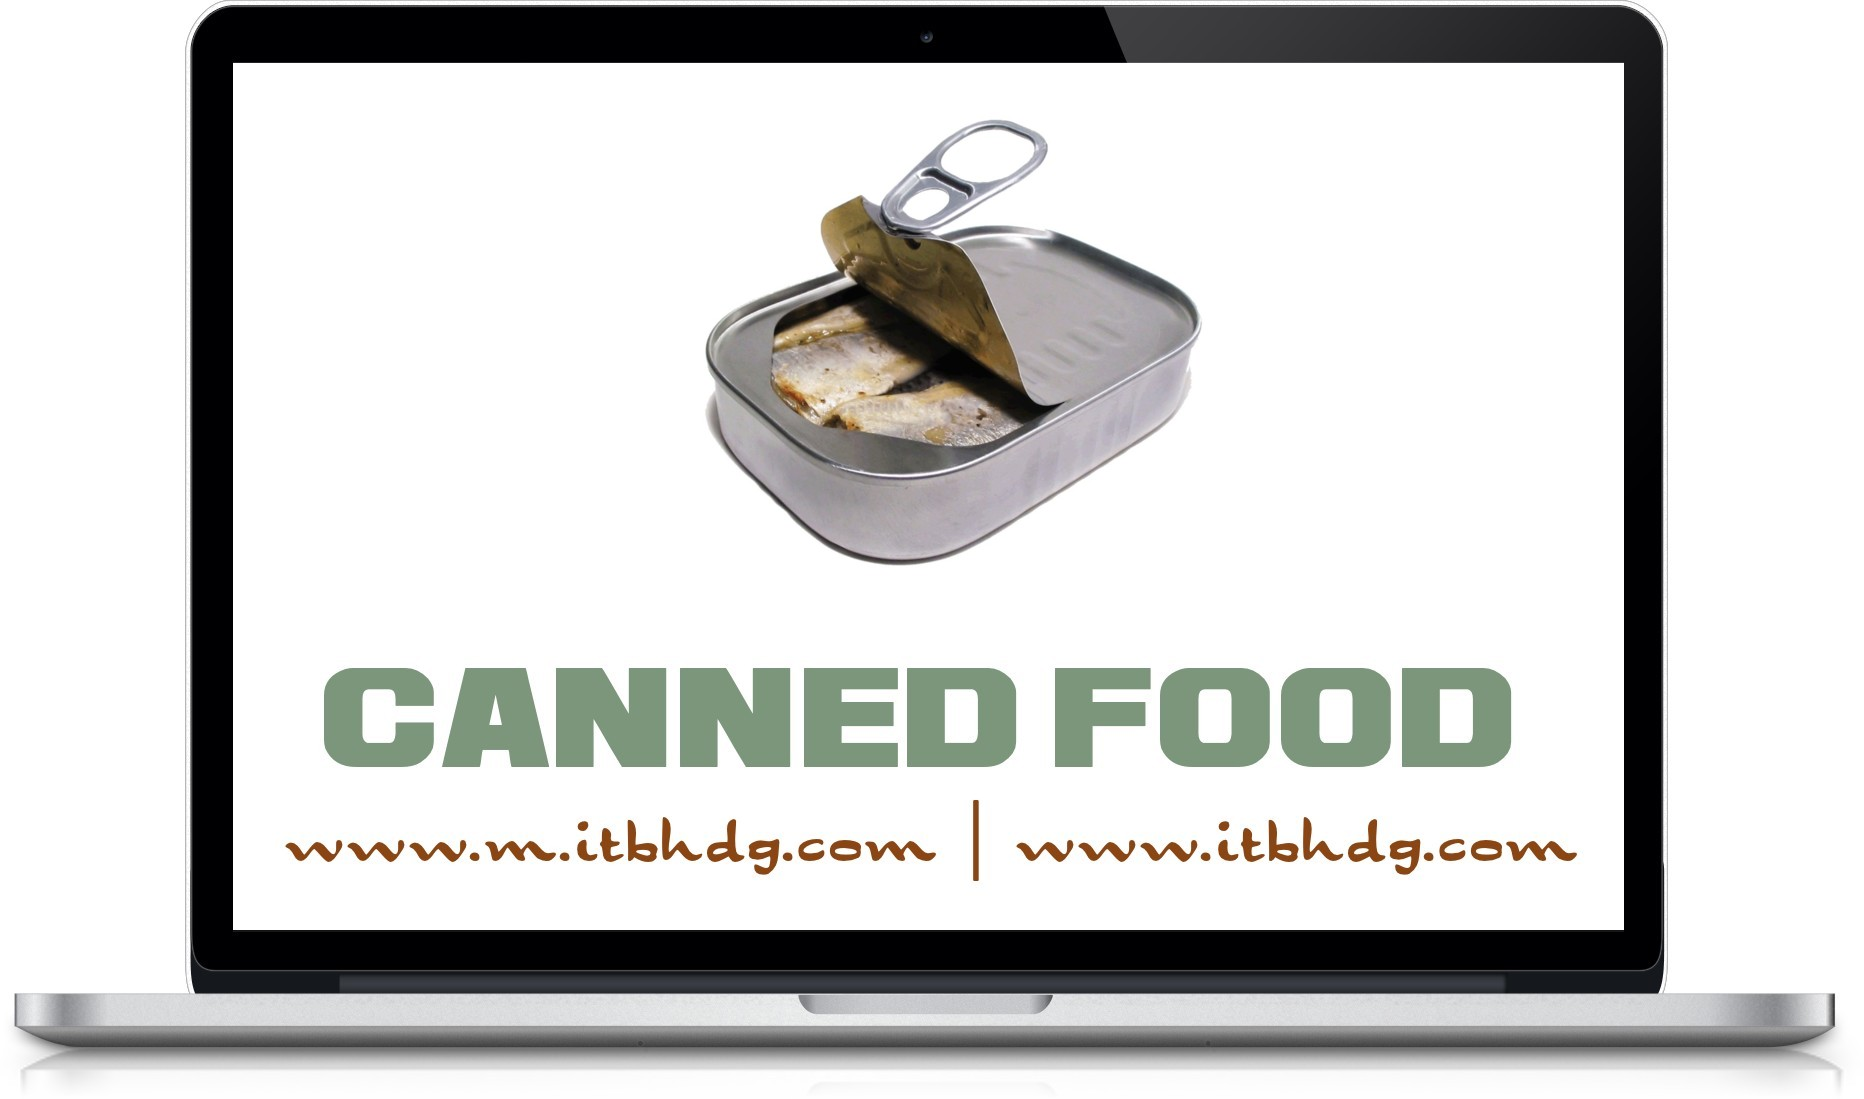 FDA Registration of companies selling foods in buckets, jars, bottles | www.m.itbhdg.com | www.itbhdg.com